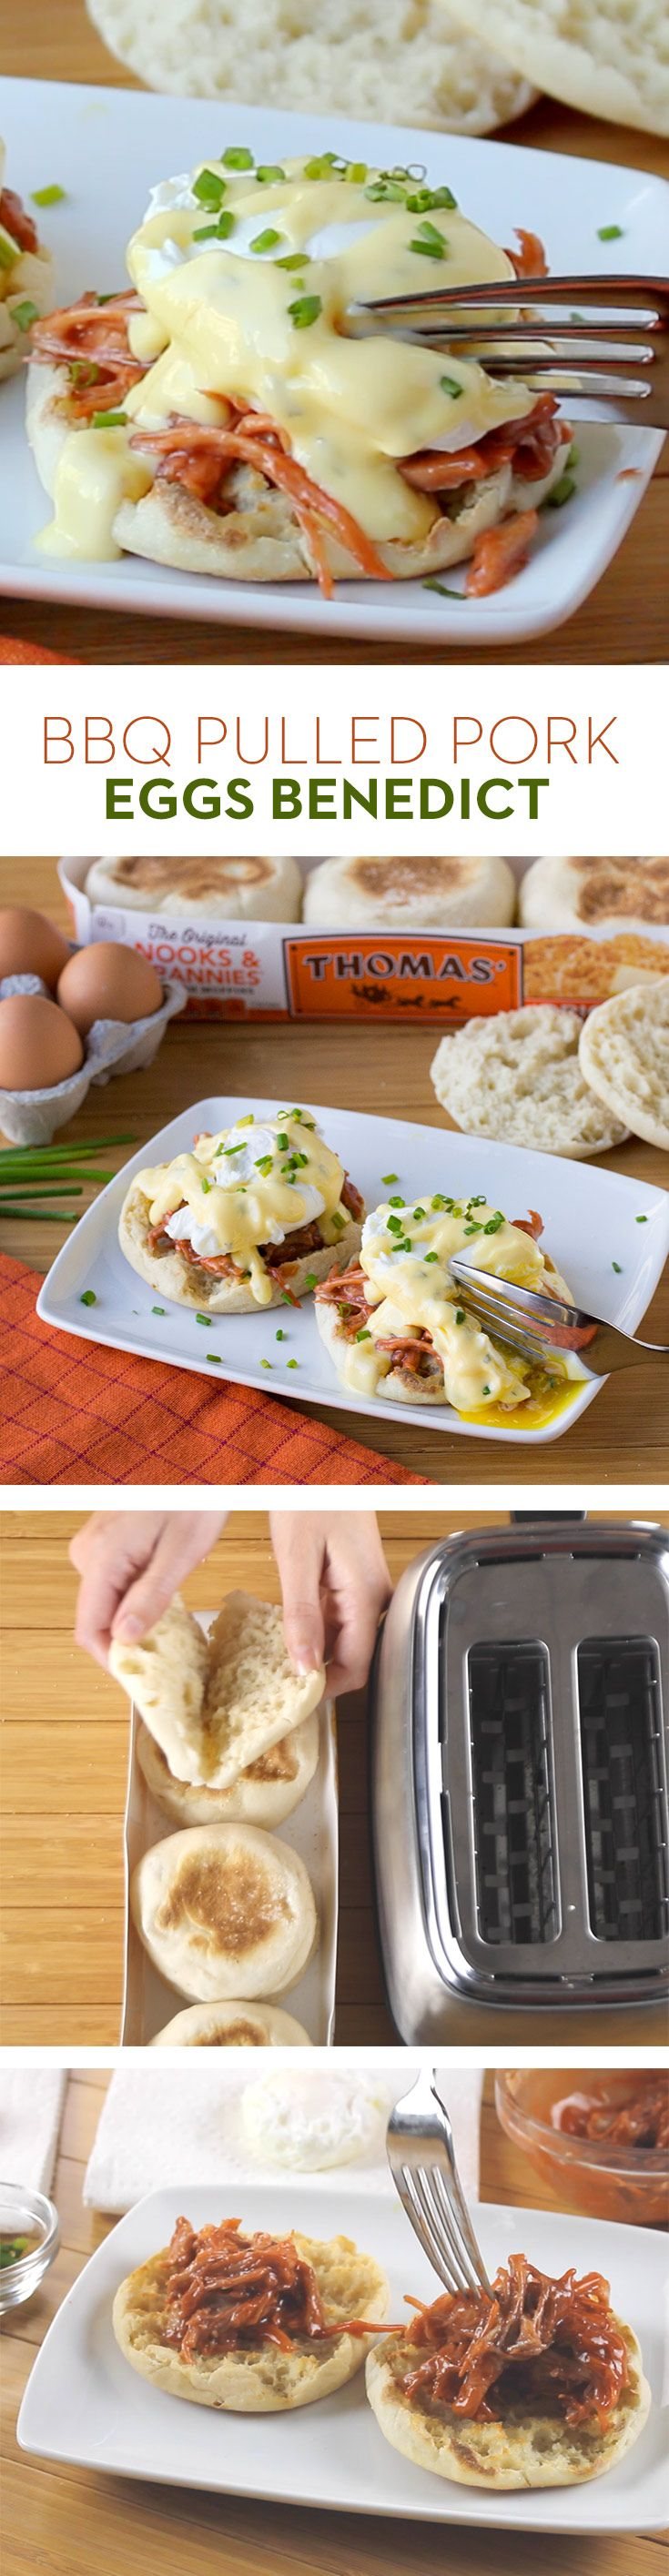 BBQ Pulled Pork Eggs Benedict: Make brunch extra delicious by adding pulled pork to a classic eggs Benedict along with BBQ sauce, hollandaise and chives on a Thomas' Original English Muffin.